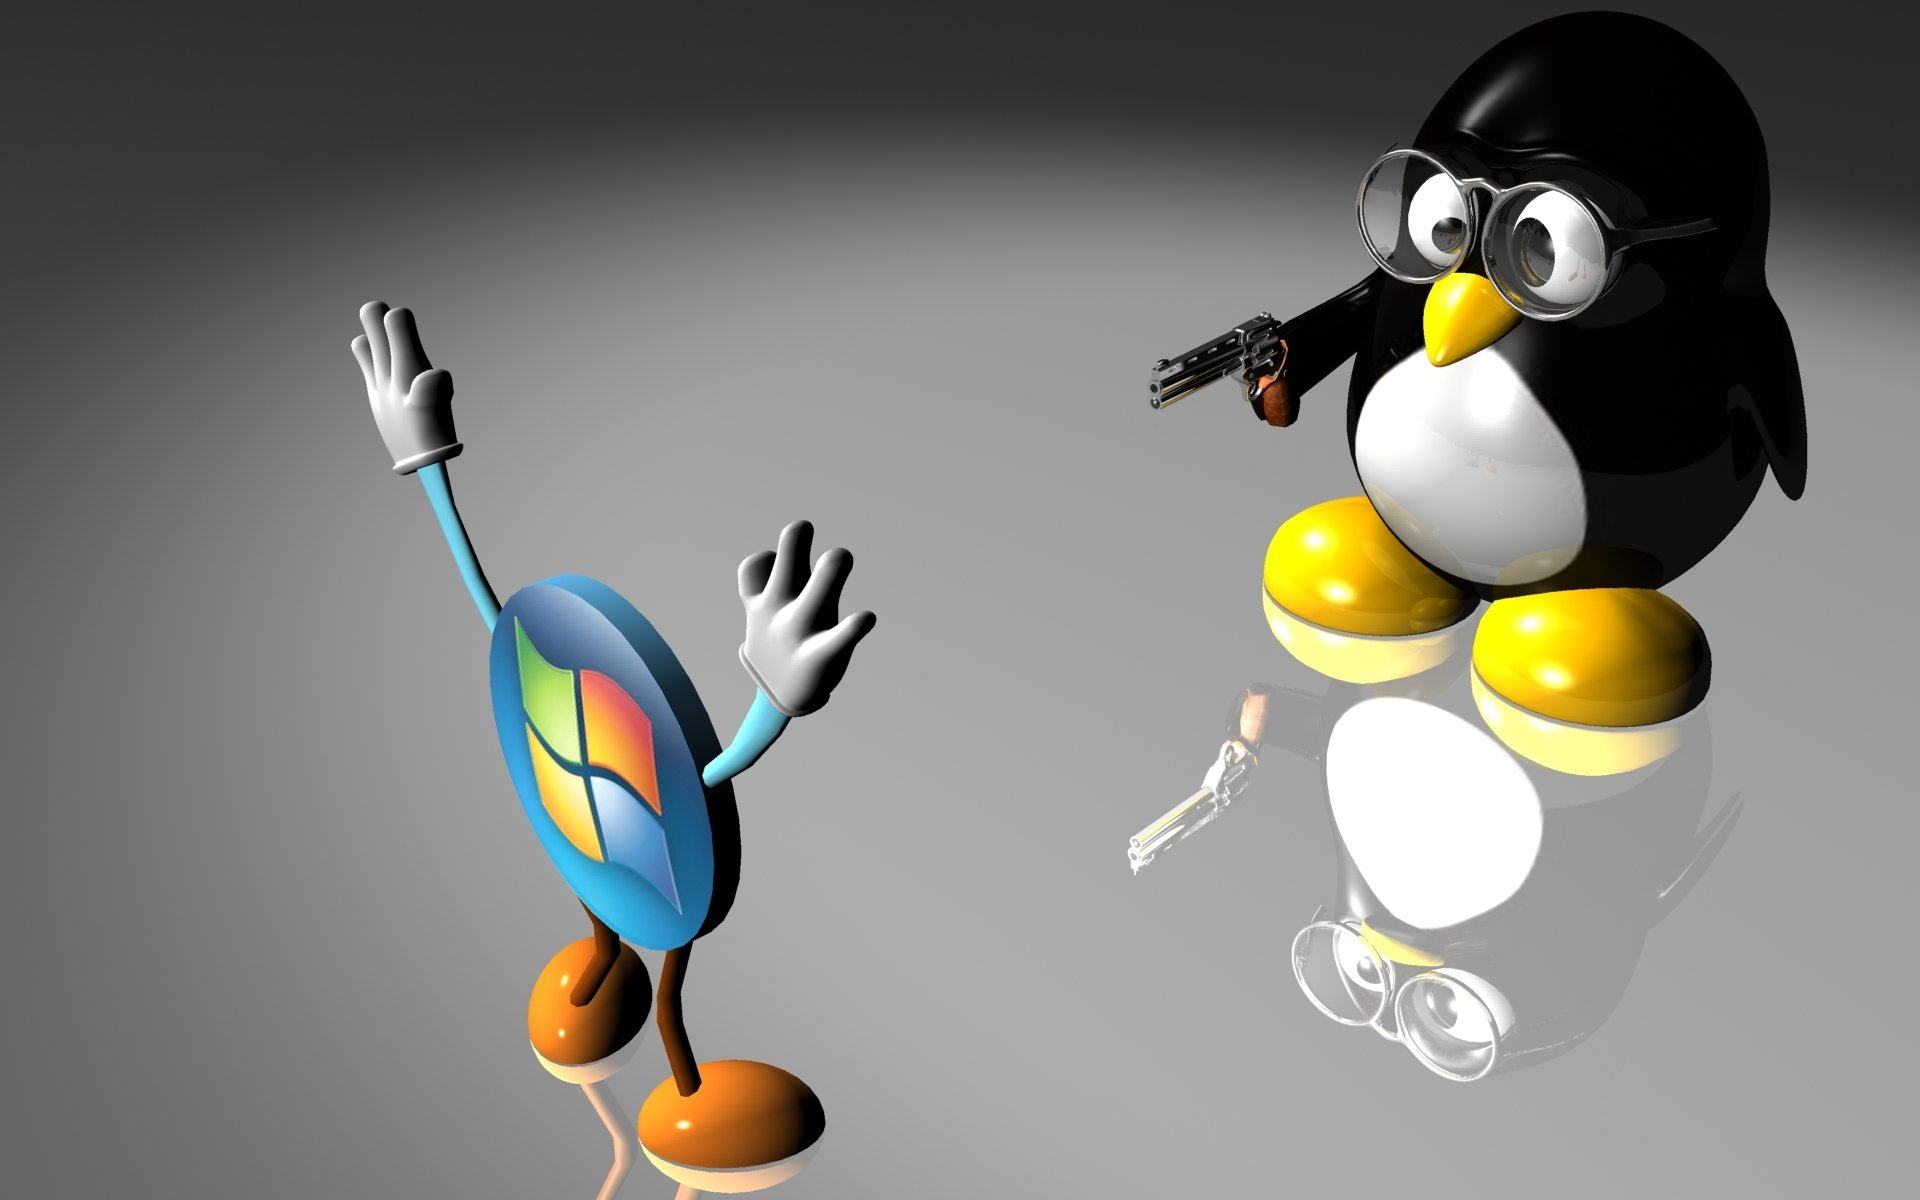 Technology - Linux  Penguin Tree Blå Fight Gun Humor Produkter Windows Bakgrund